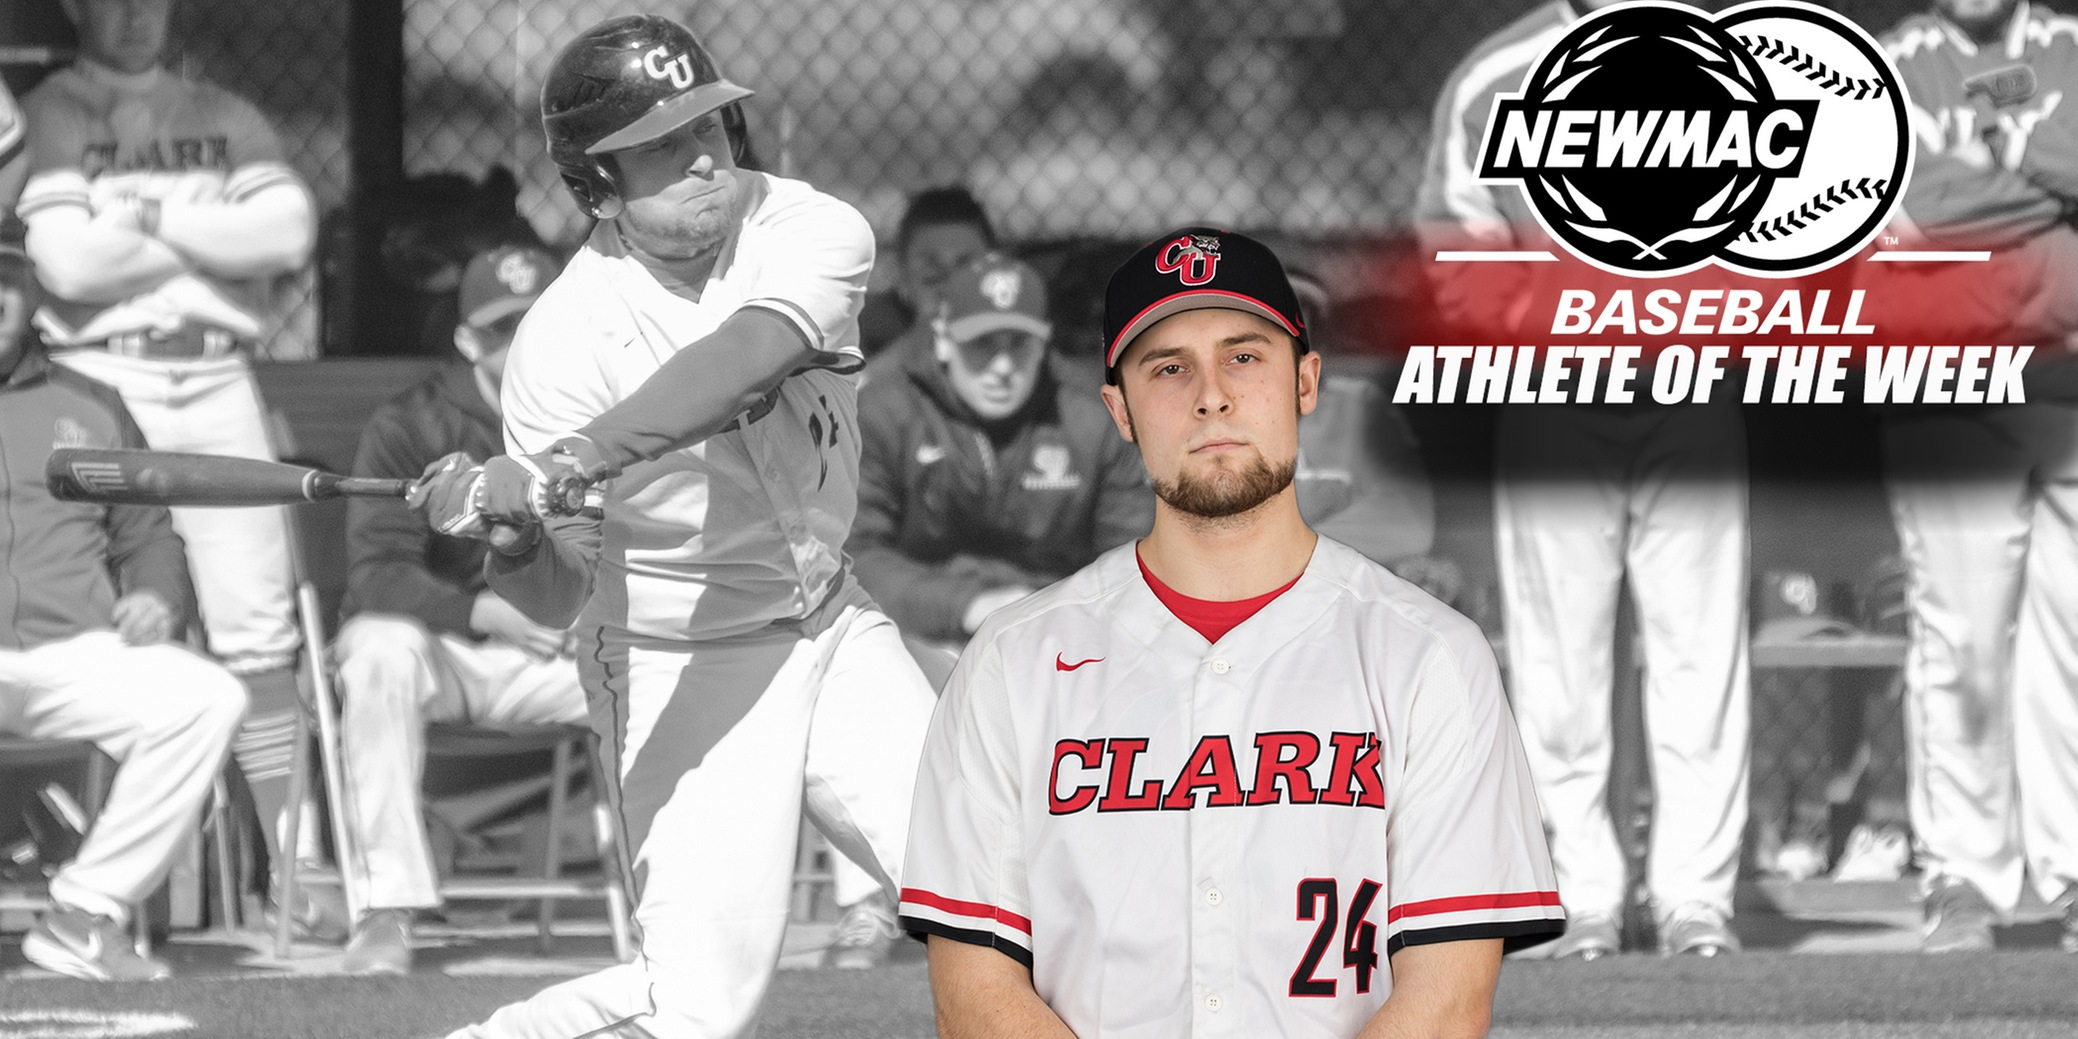 Thibault Named NEWMAC Baseball Athlete of the Week